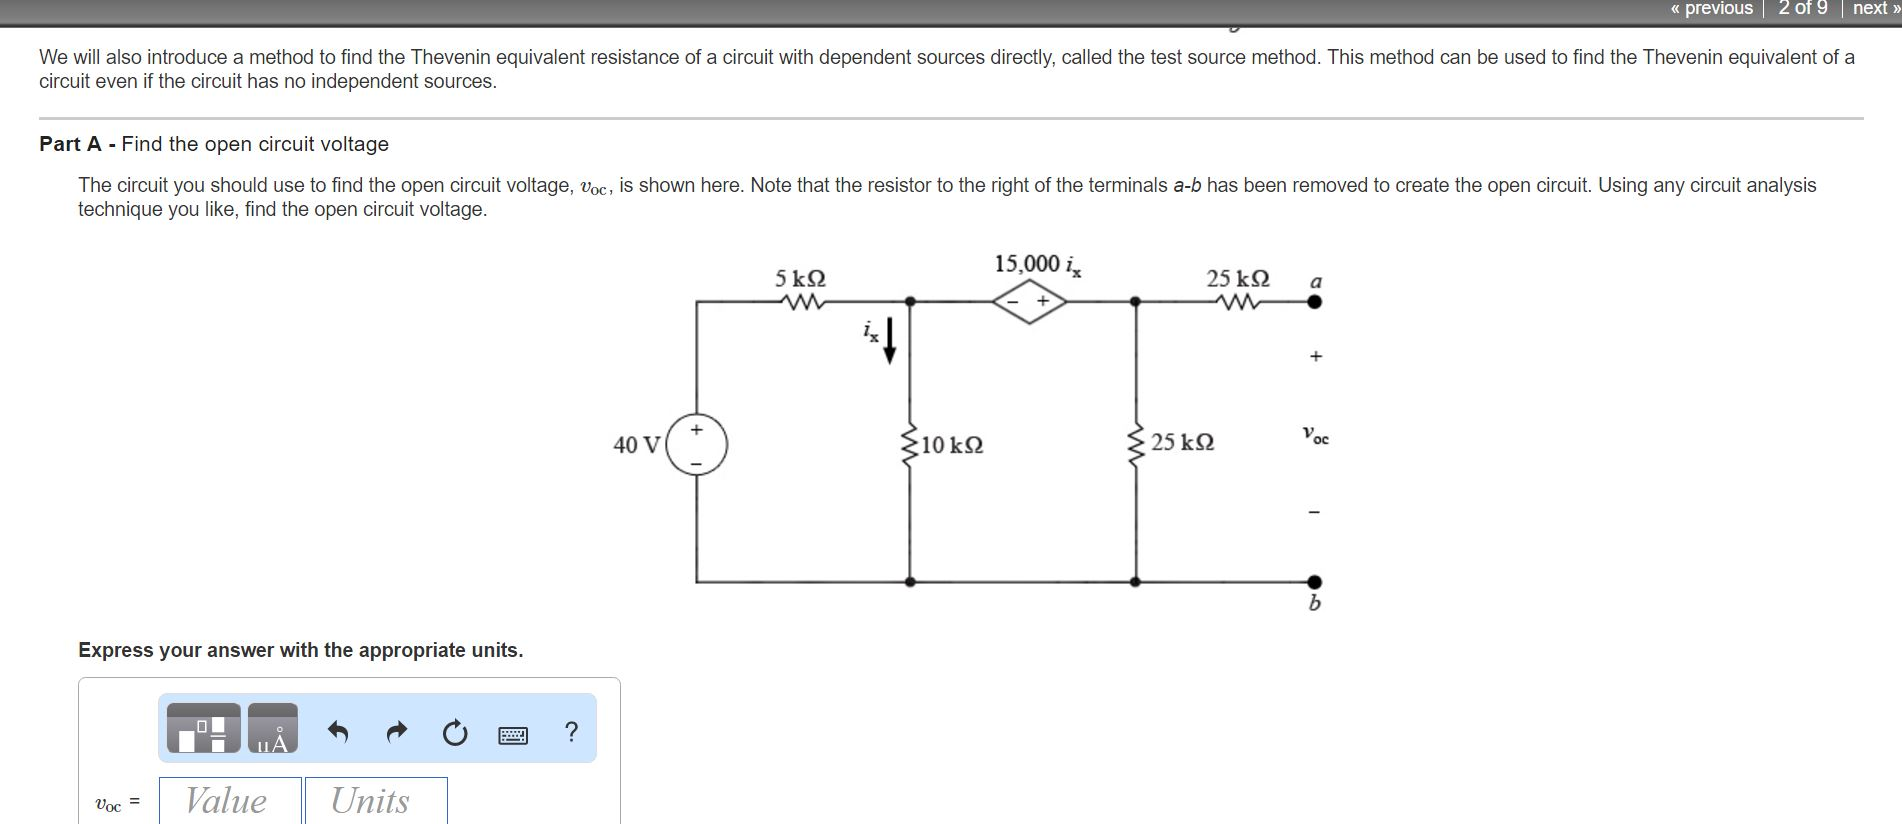 Solved The Circuit You Should Use To Find Open Circui Equivalent Resistance Rt Of Given Cheggcom Previous 2 9 Next We Will Also Introduce A Method